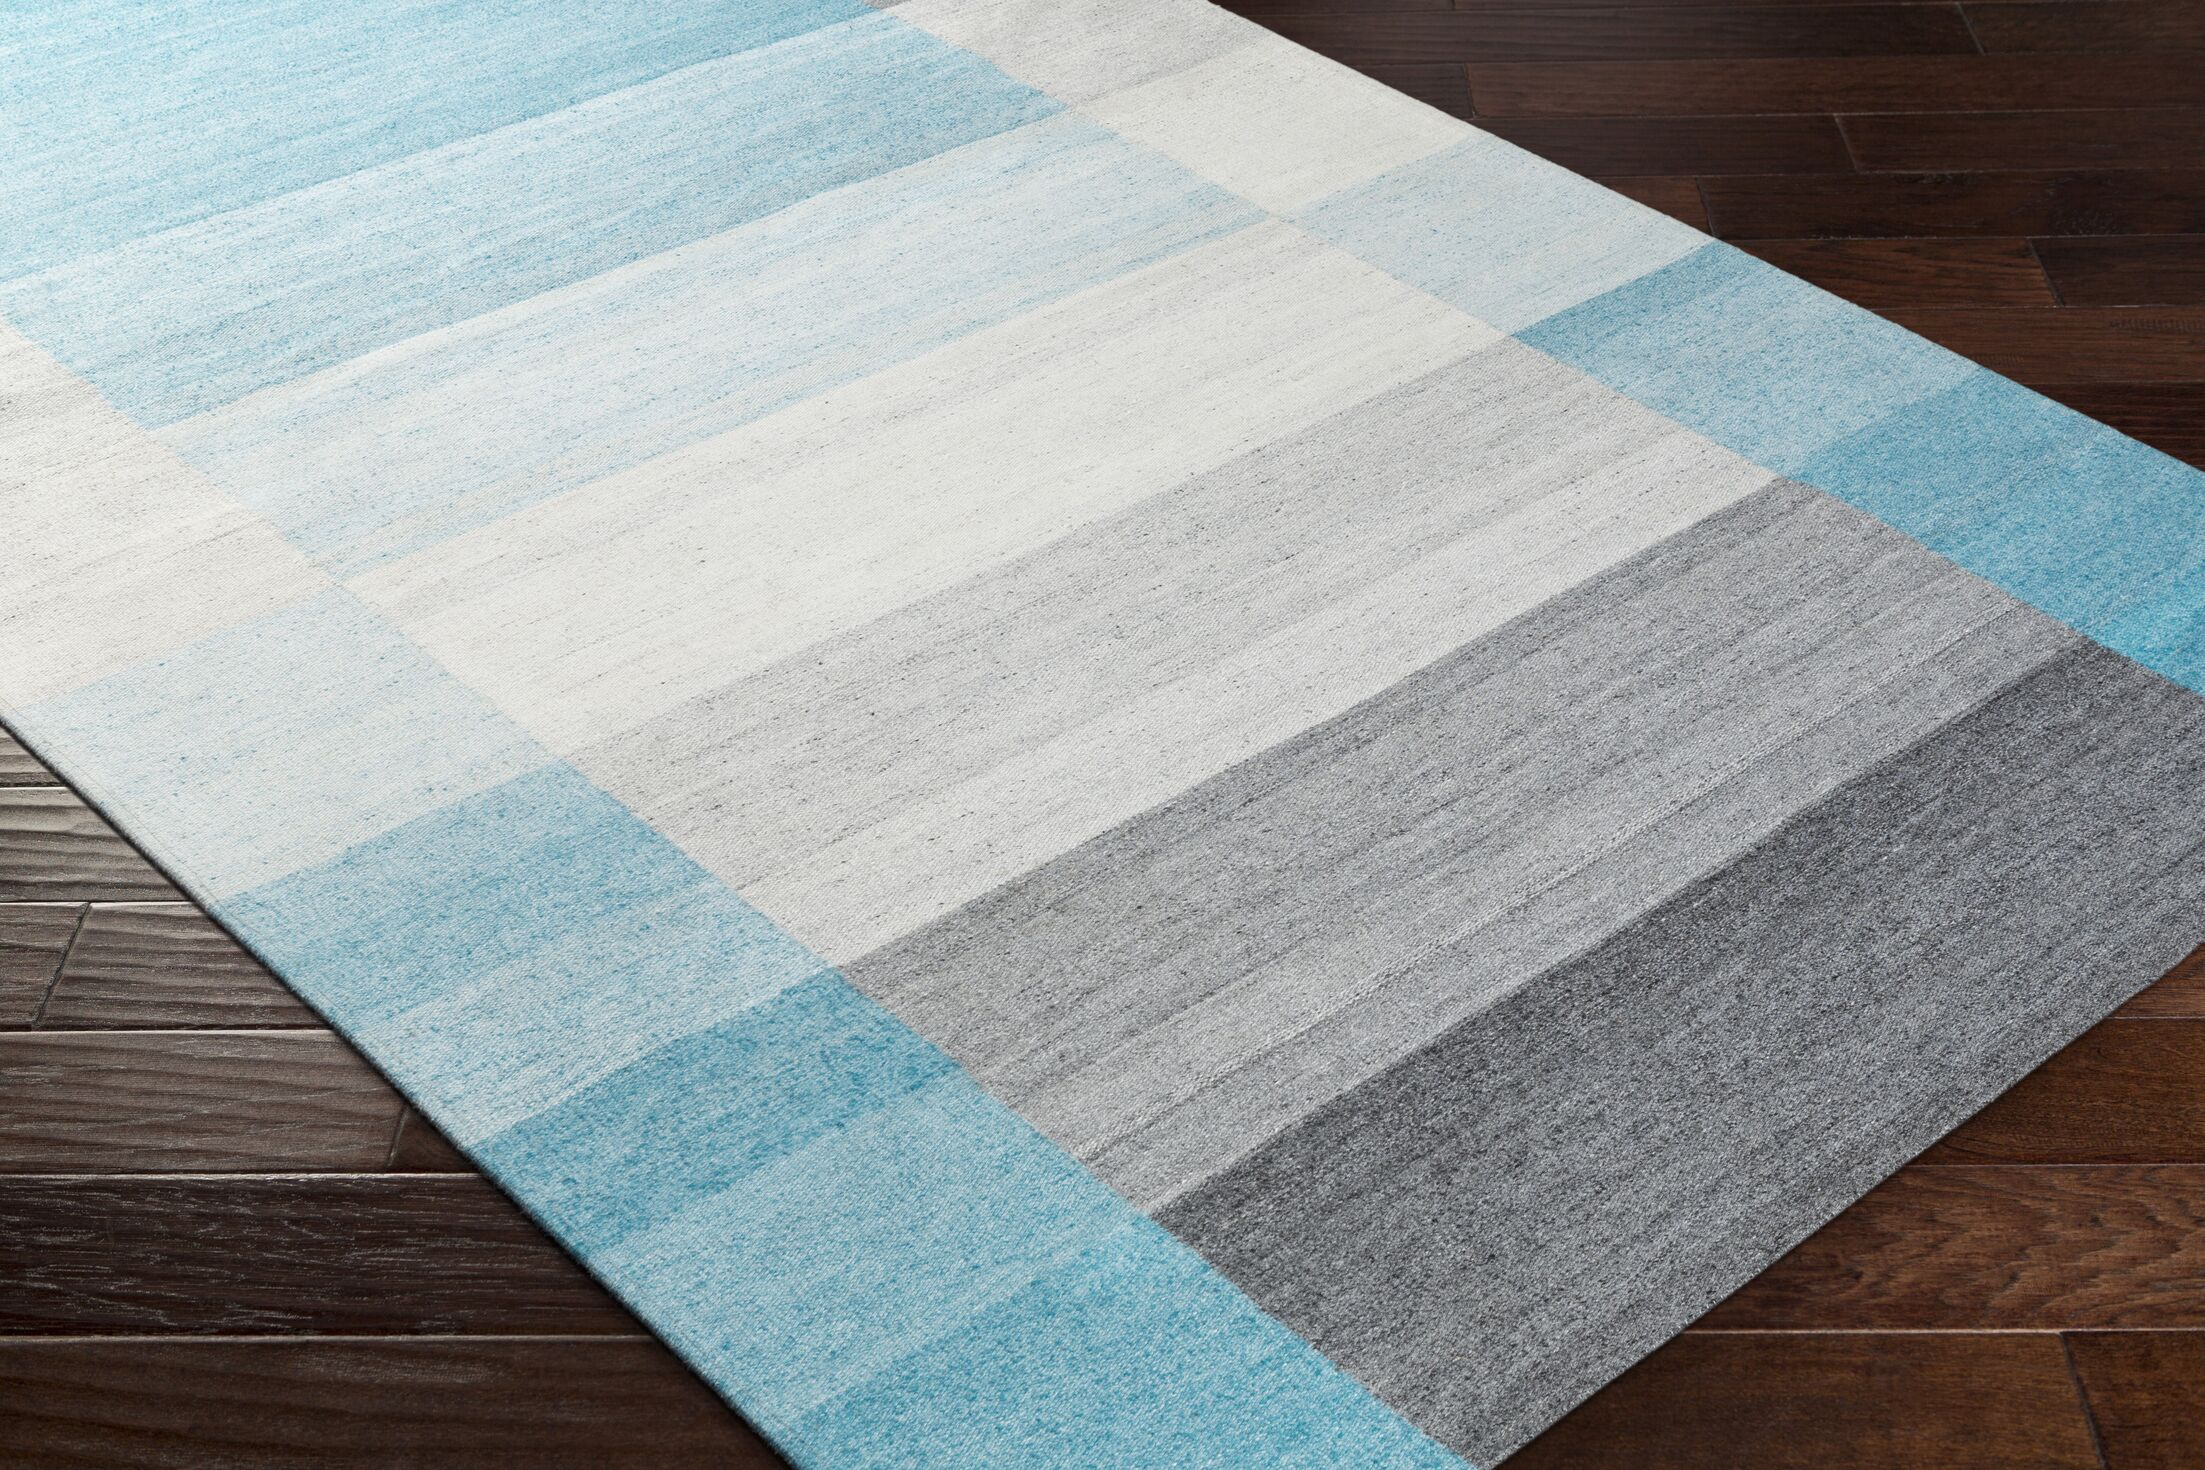 Dree Hand-Woven Gray/Blue Area Rug Rug Size: Rectangle 8' x 10'